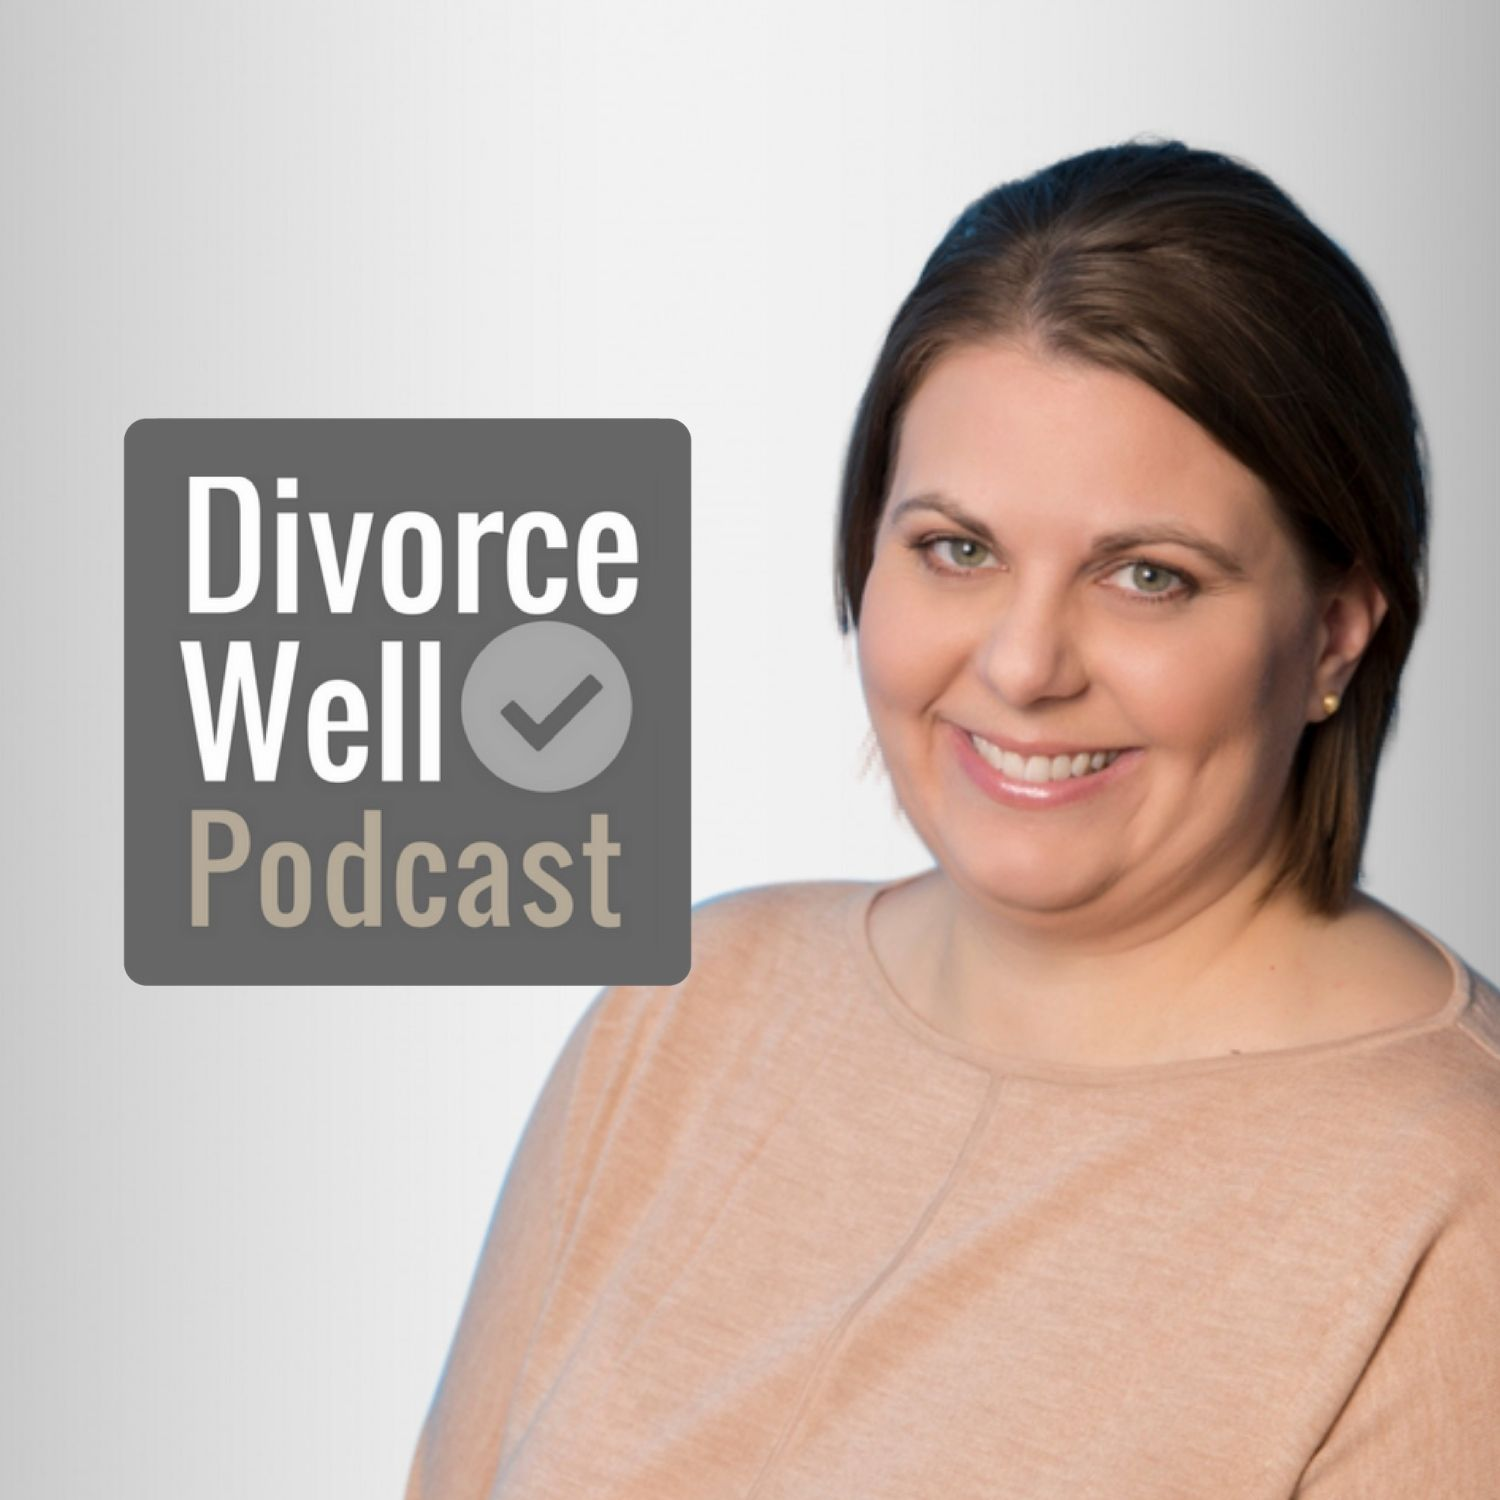 The Divorce Well Podcast